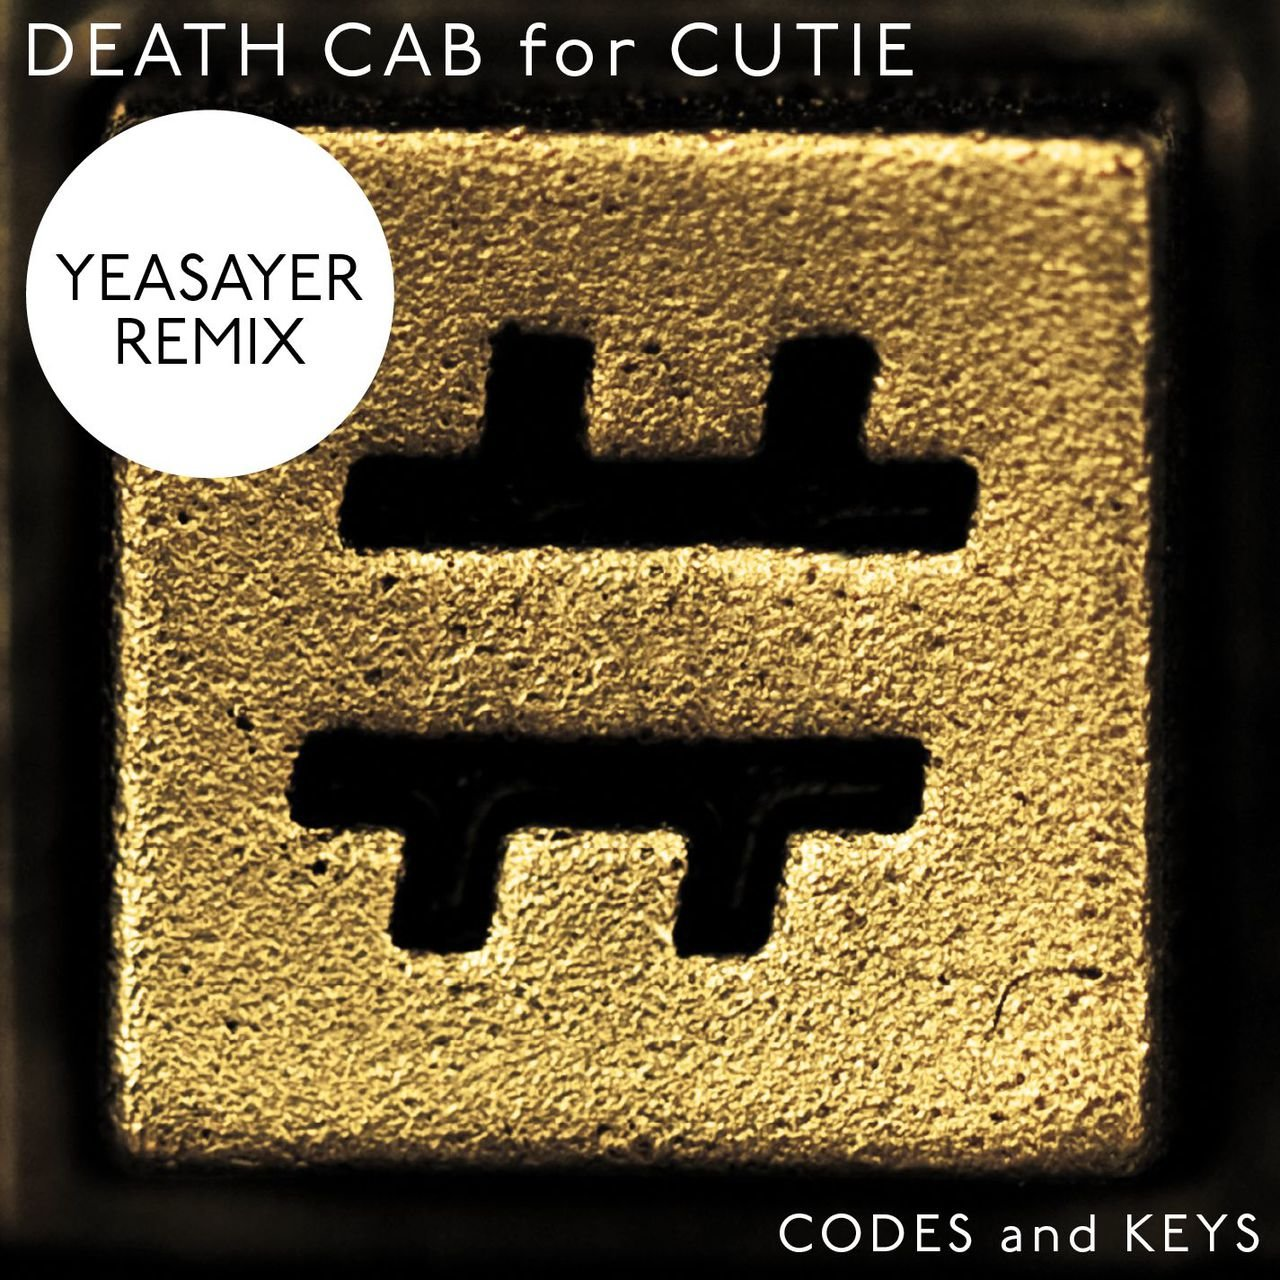 Codes And Keys (Yeasayer Remix)